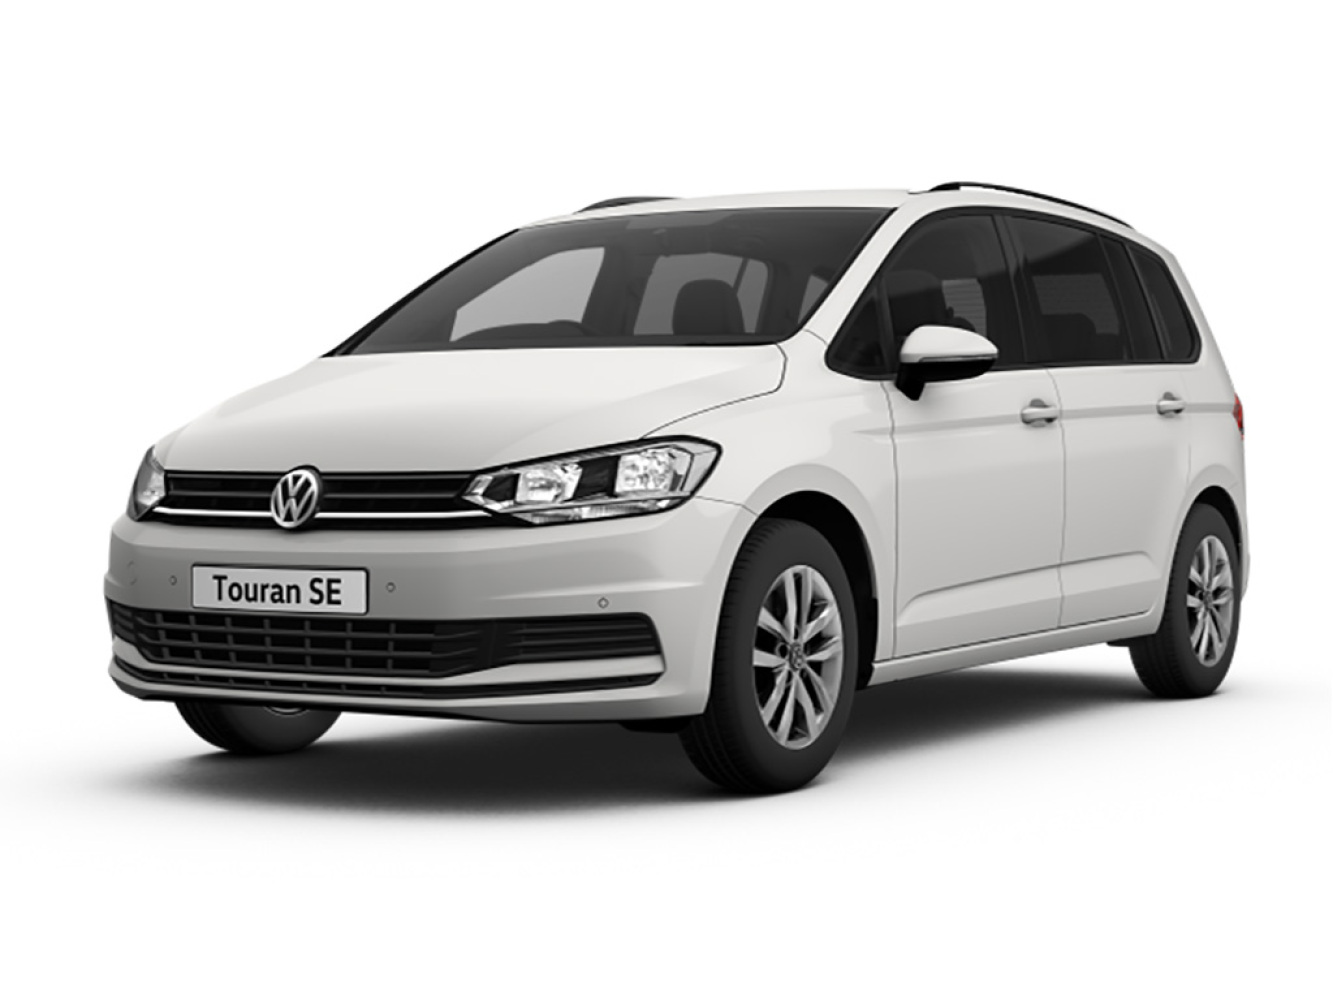 new volkswagen touran 2 0 tdi se 5dr diesel estate for. Black Bedroom Furniture Sets. Home Design Ideas